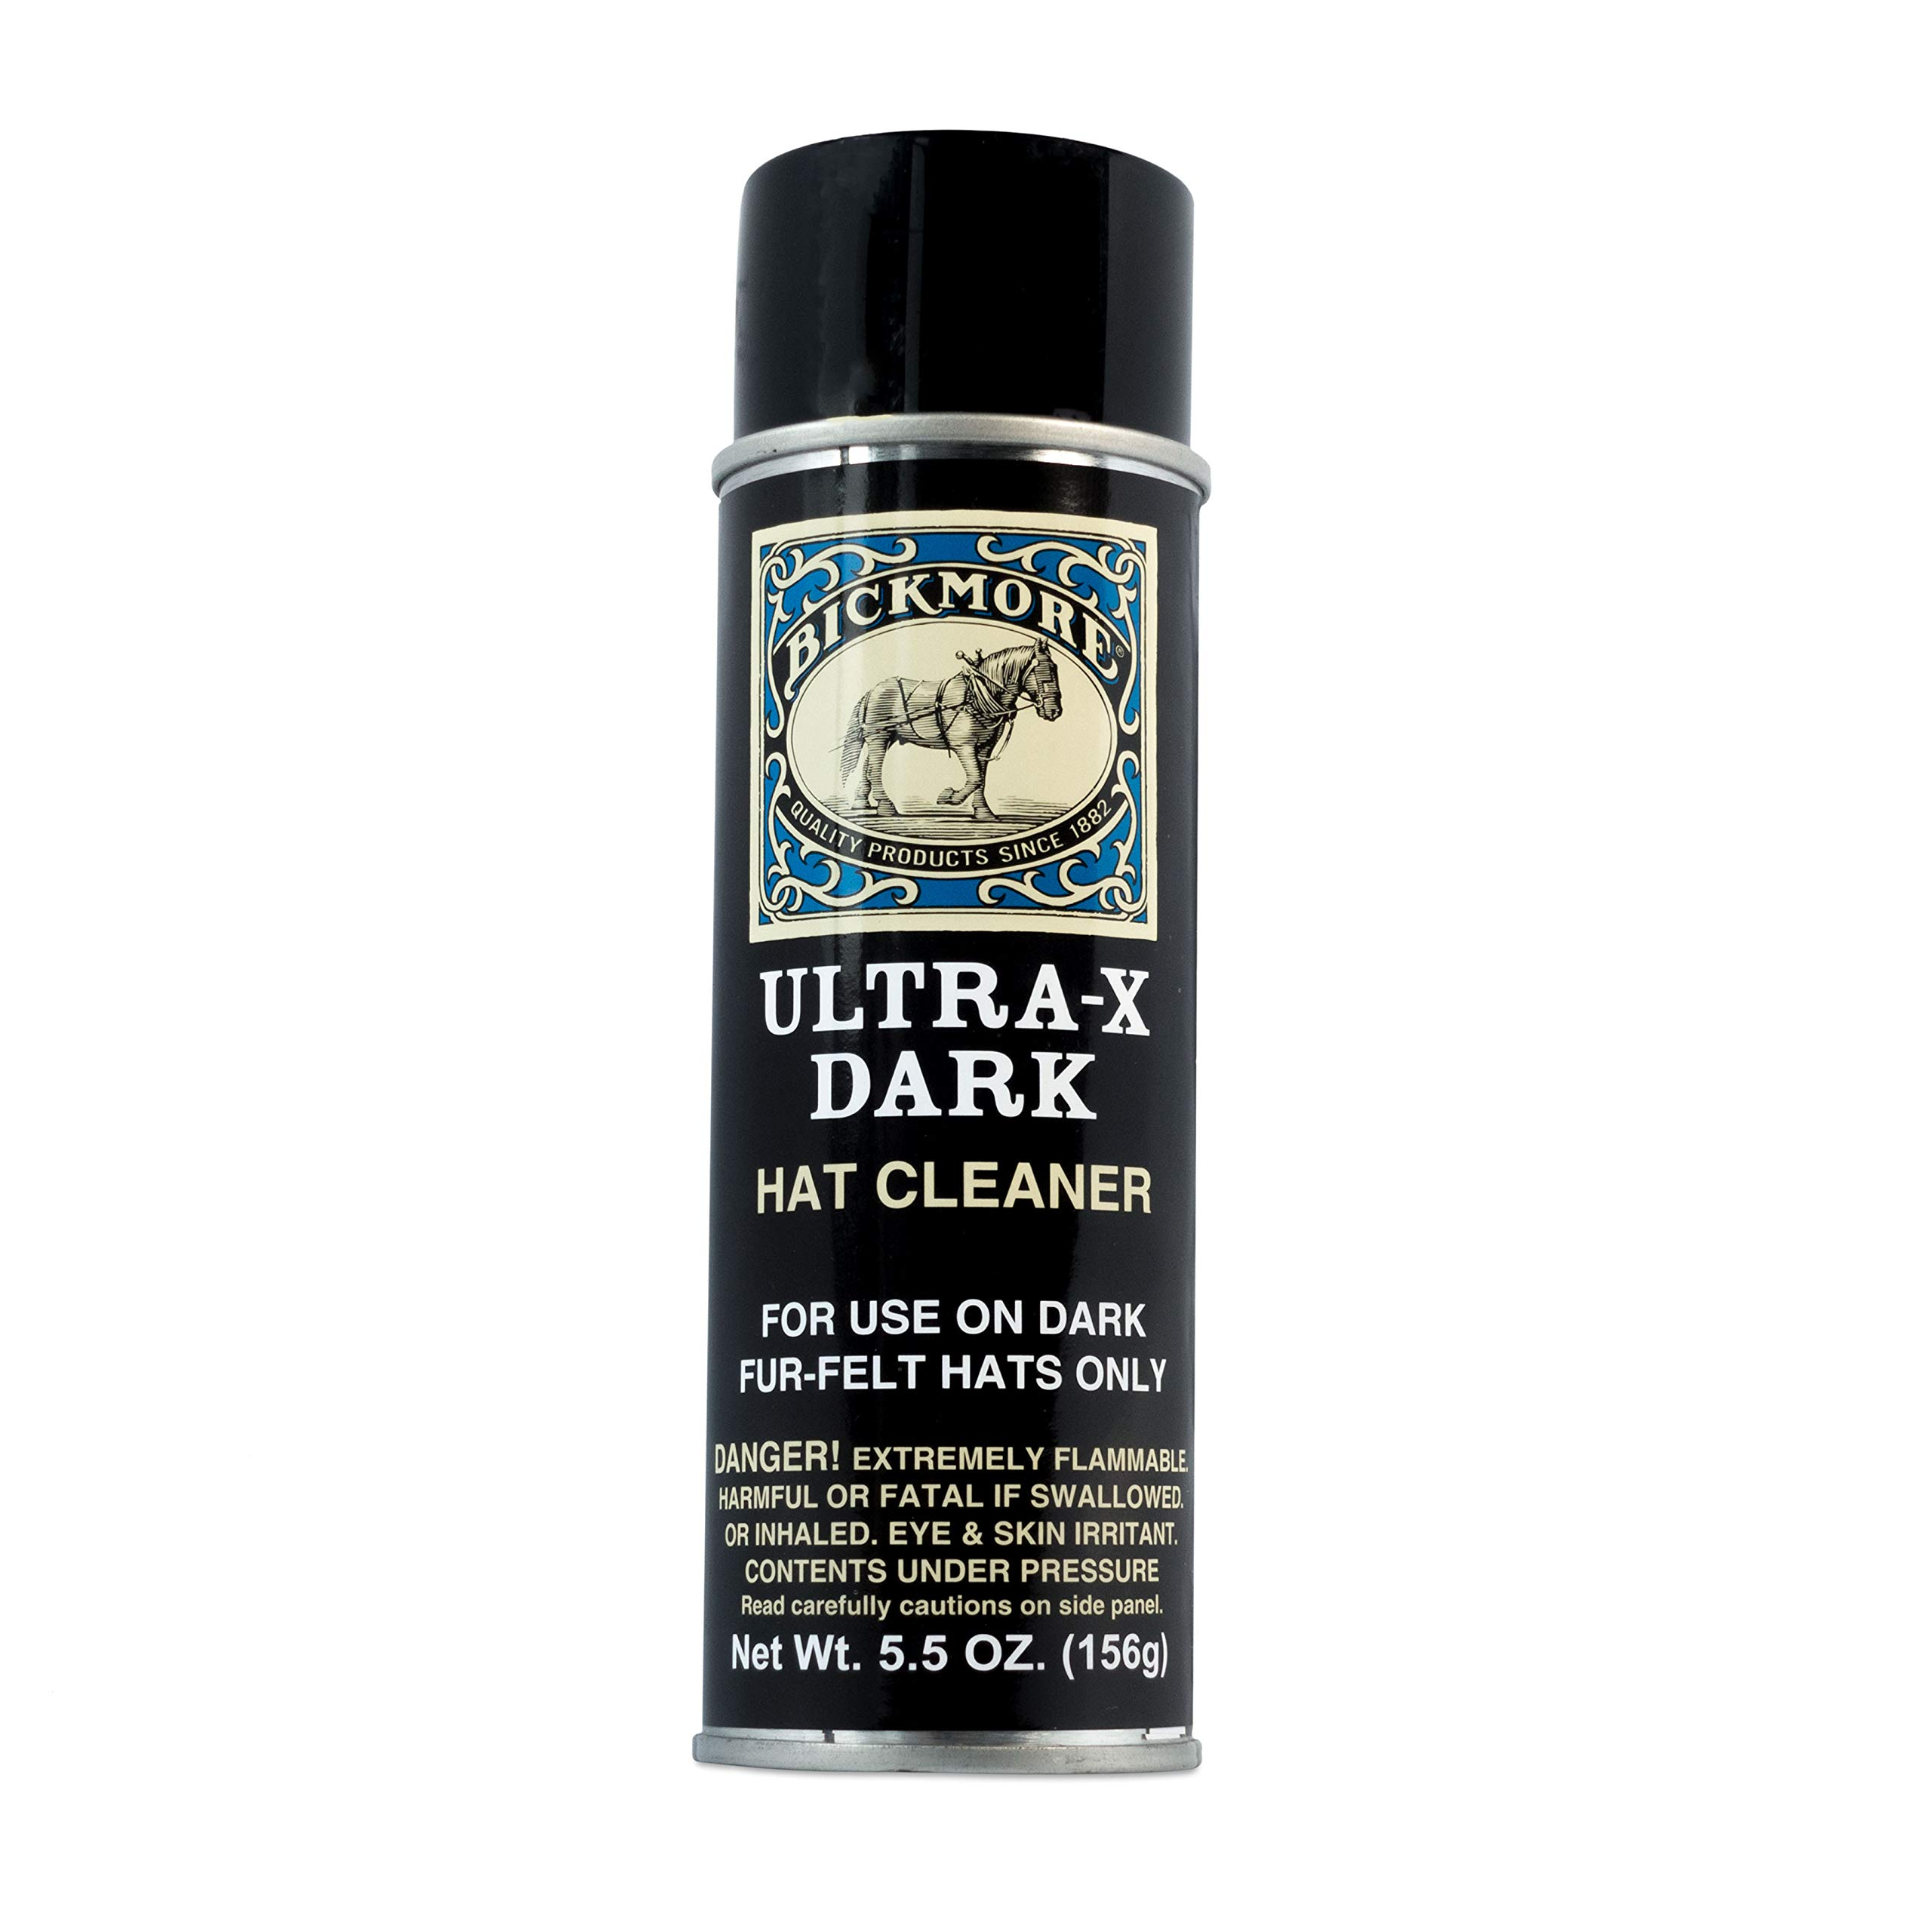 Bickmore Ultra-X Powdered Dark Hat Cleaner Kit - Remove Dirt, Dust, Fingerprints & Sweat Stains - Great for Fur - Felt Cowboy Hats, Baseball Hats, Fedoras, Sun Hats & More by Bickmore (Image #2)